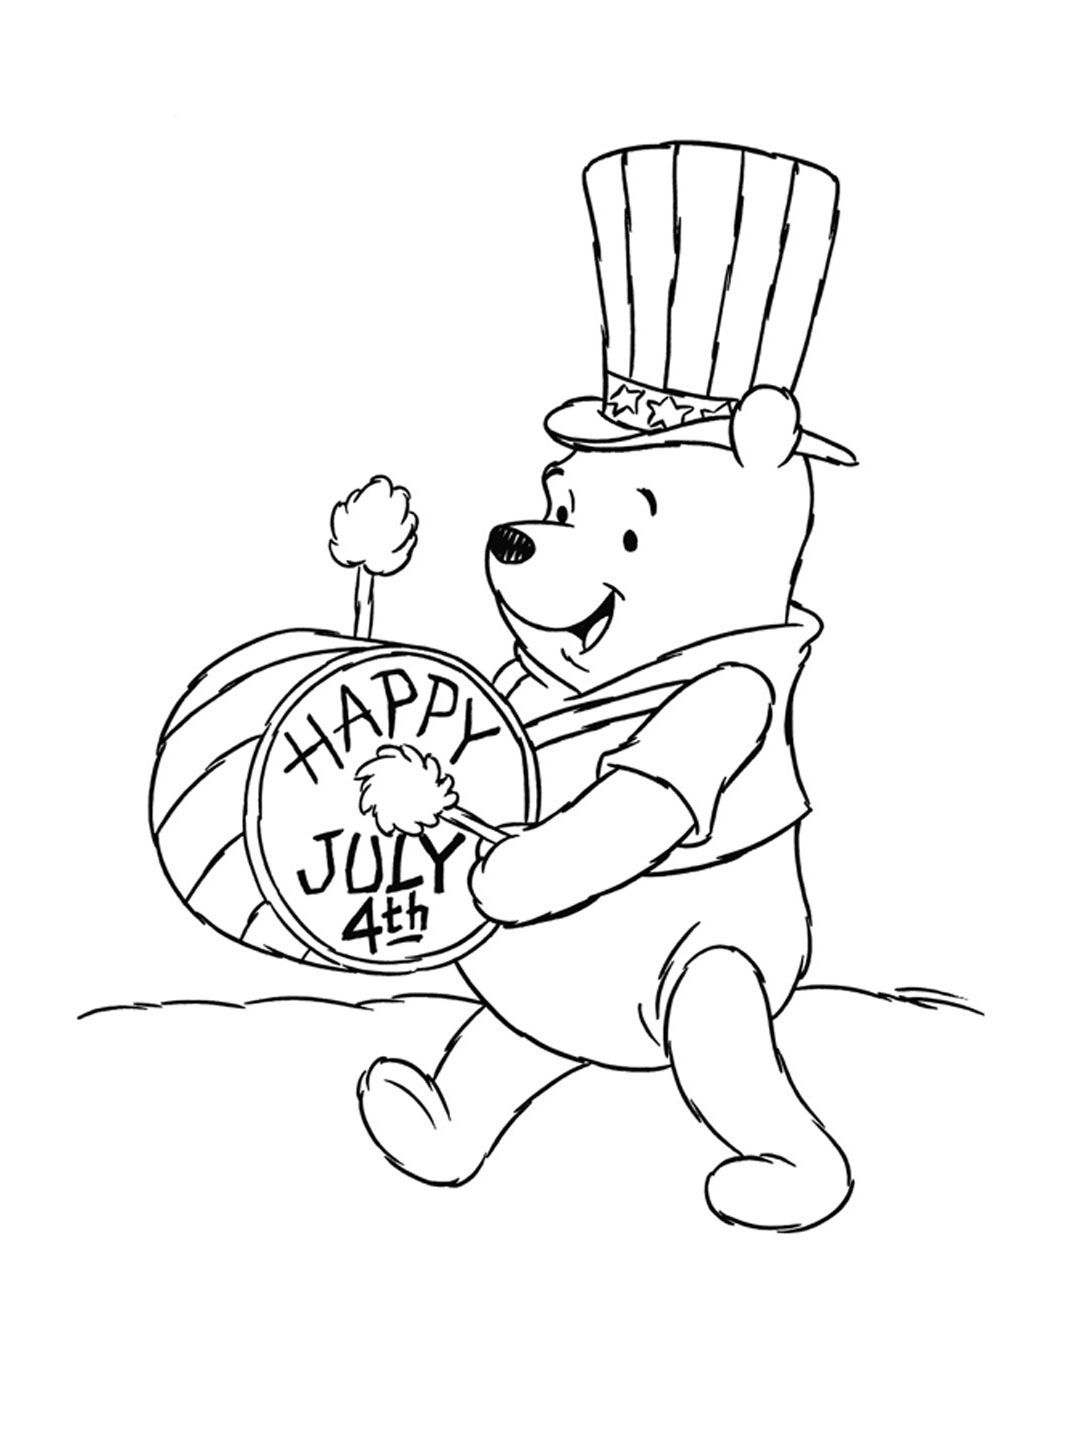 Have A Safe And Happy 4th Of July Don T Forget The Reason This Holiday Exists And Why It Is So Relevant Coloring Books Detailed Coloring Pages Coloring Pages